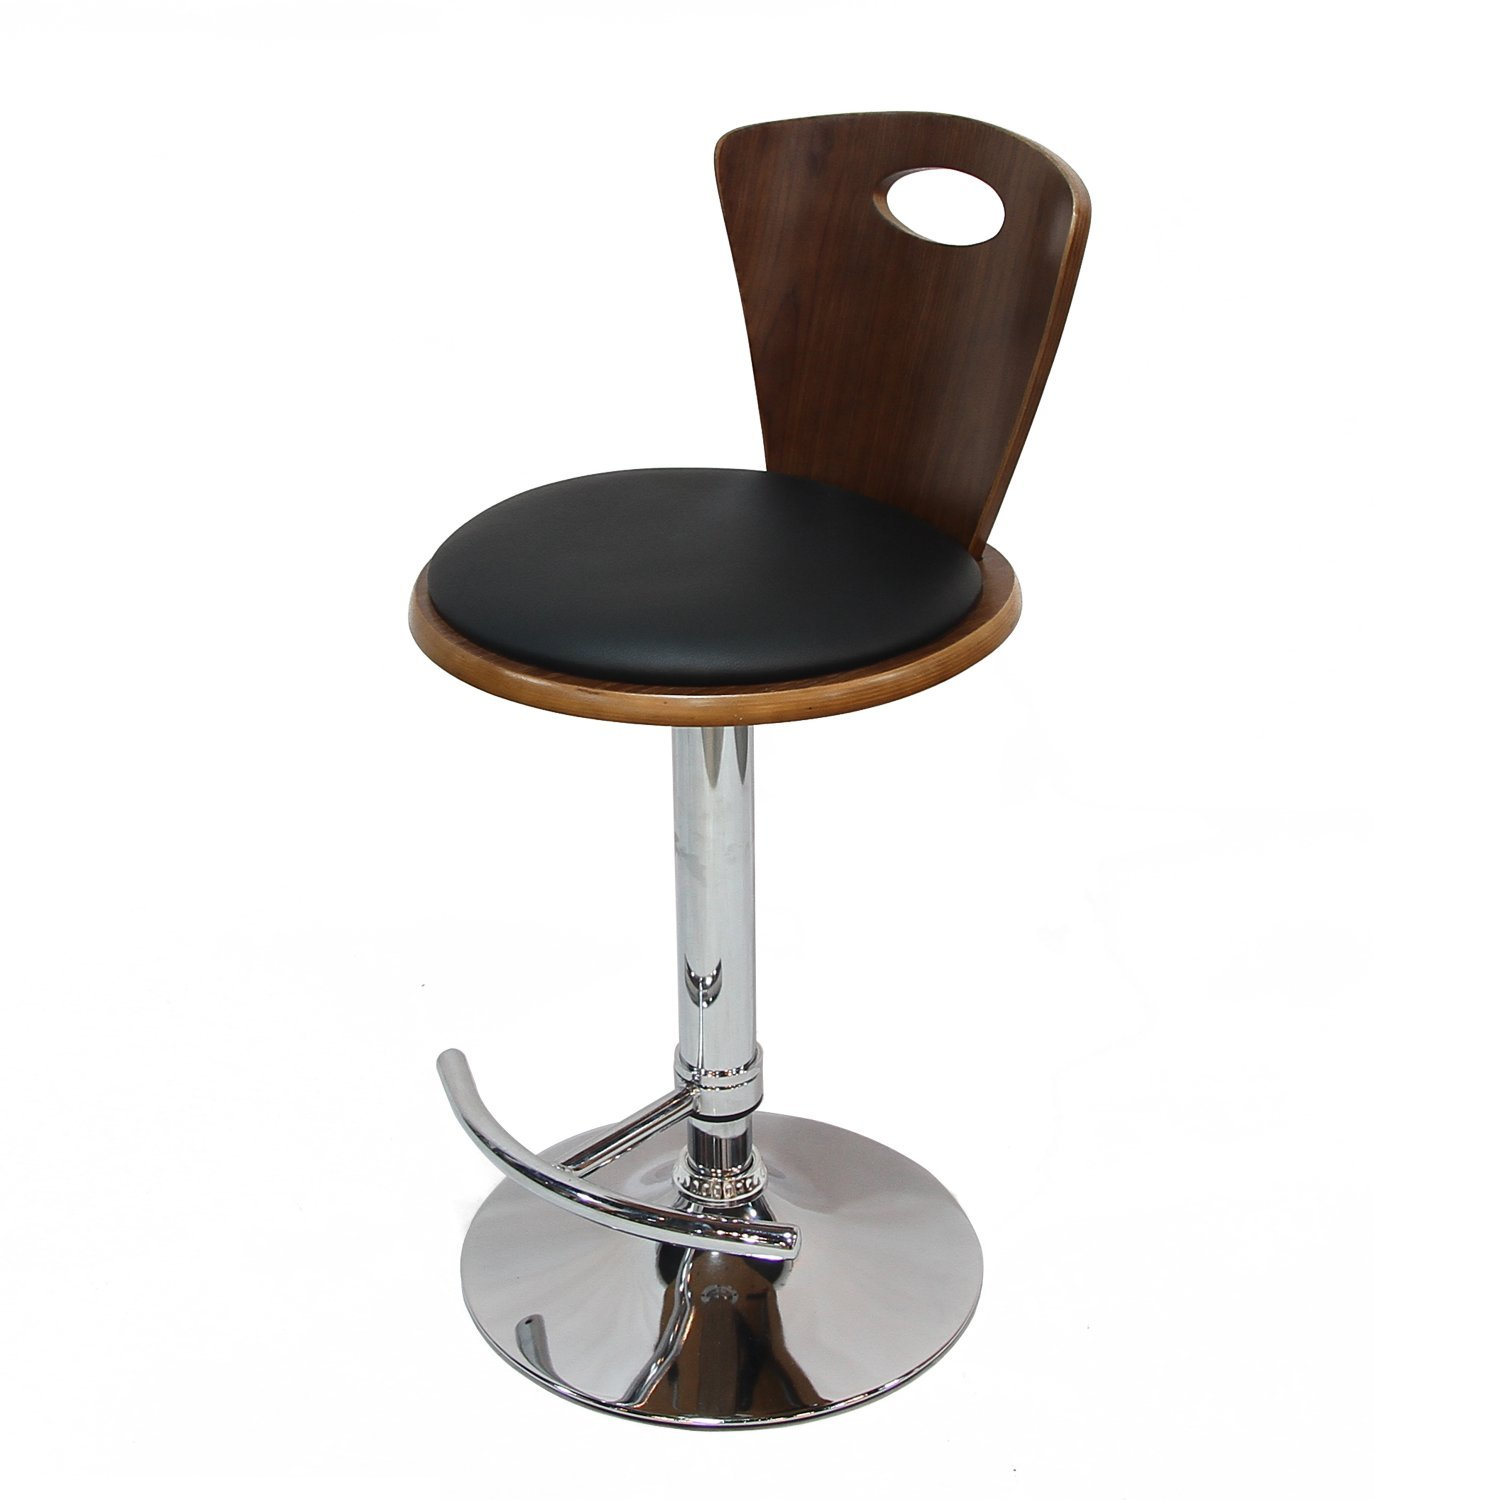 Magnificent Decenthome Adjustable Height Plywood Bar Stool With Black Pu Ch0260 Gamerscity Chair Design For Home Gamerscityorg